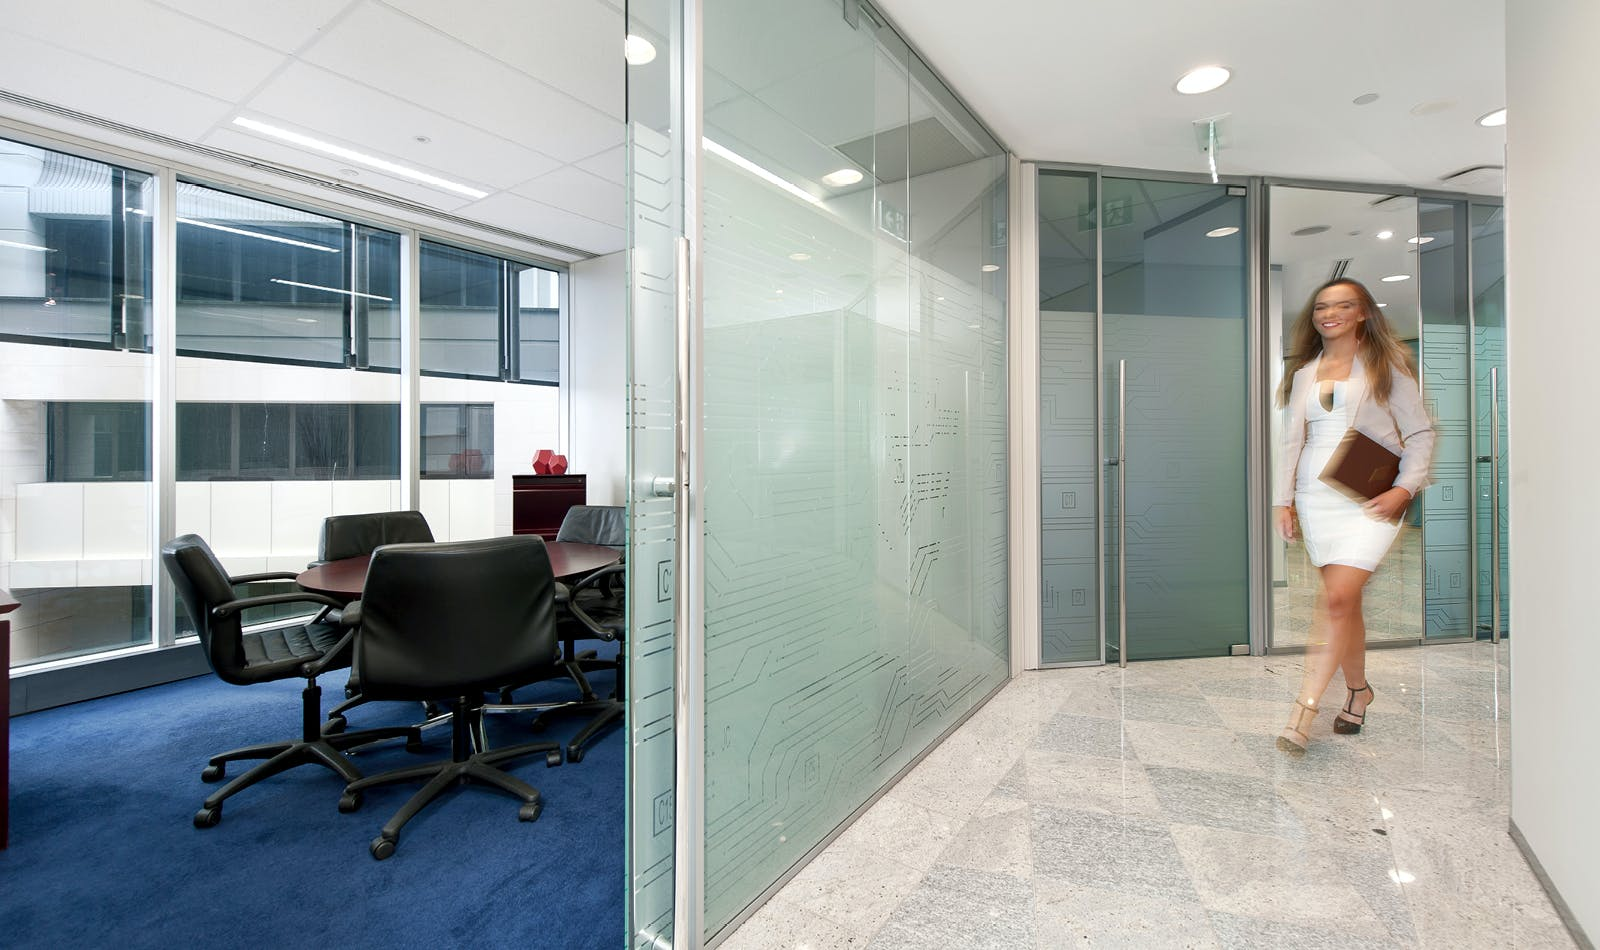 For 4, meeting room at Octagon Building, image 1